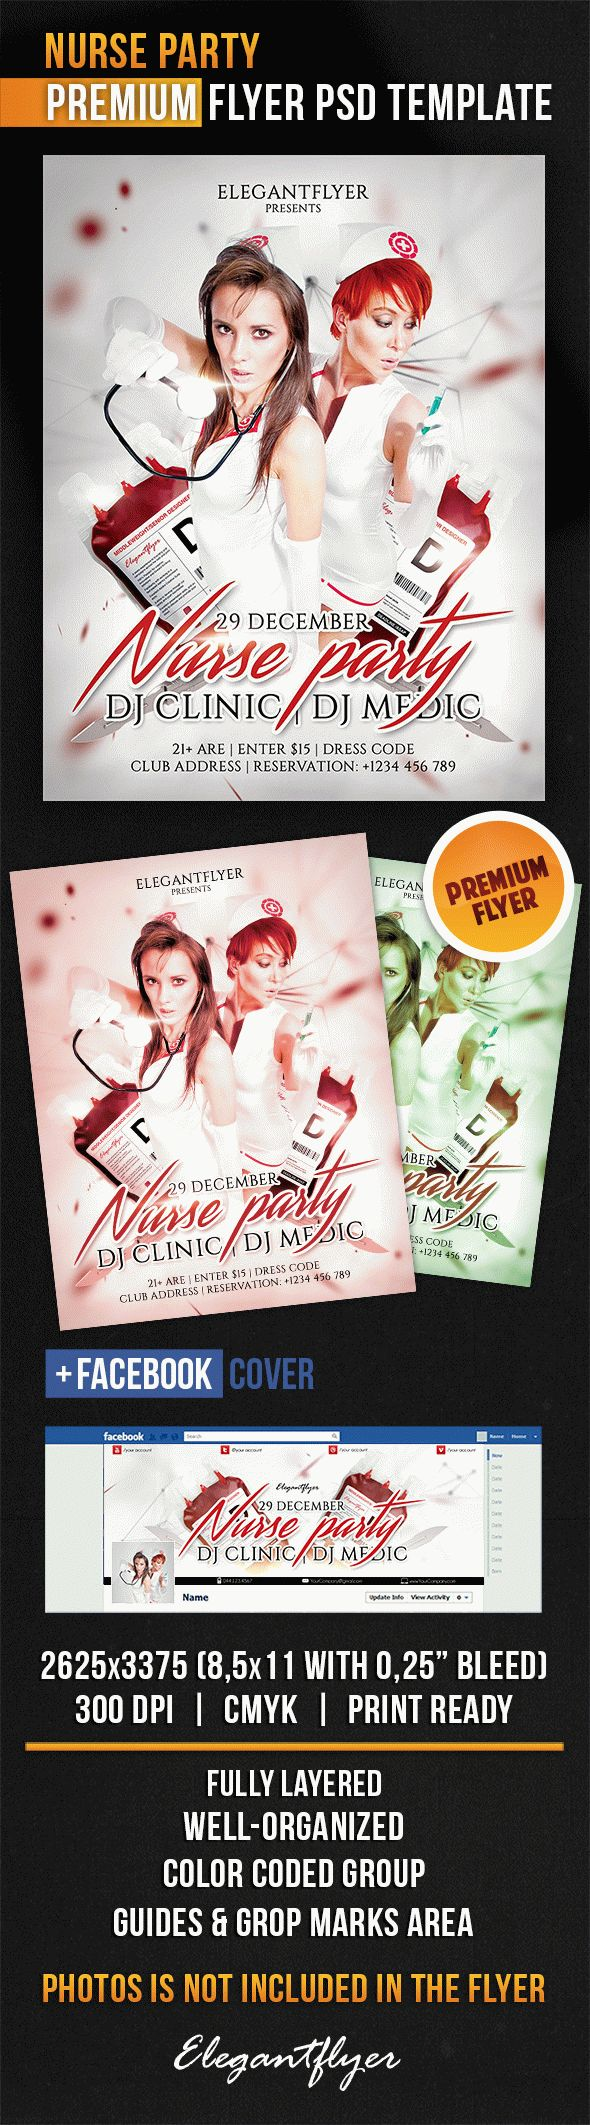 Nurse Party – Flyer PSD Template + Facebook Cover